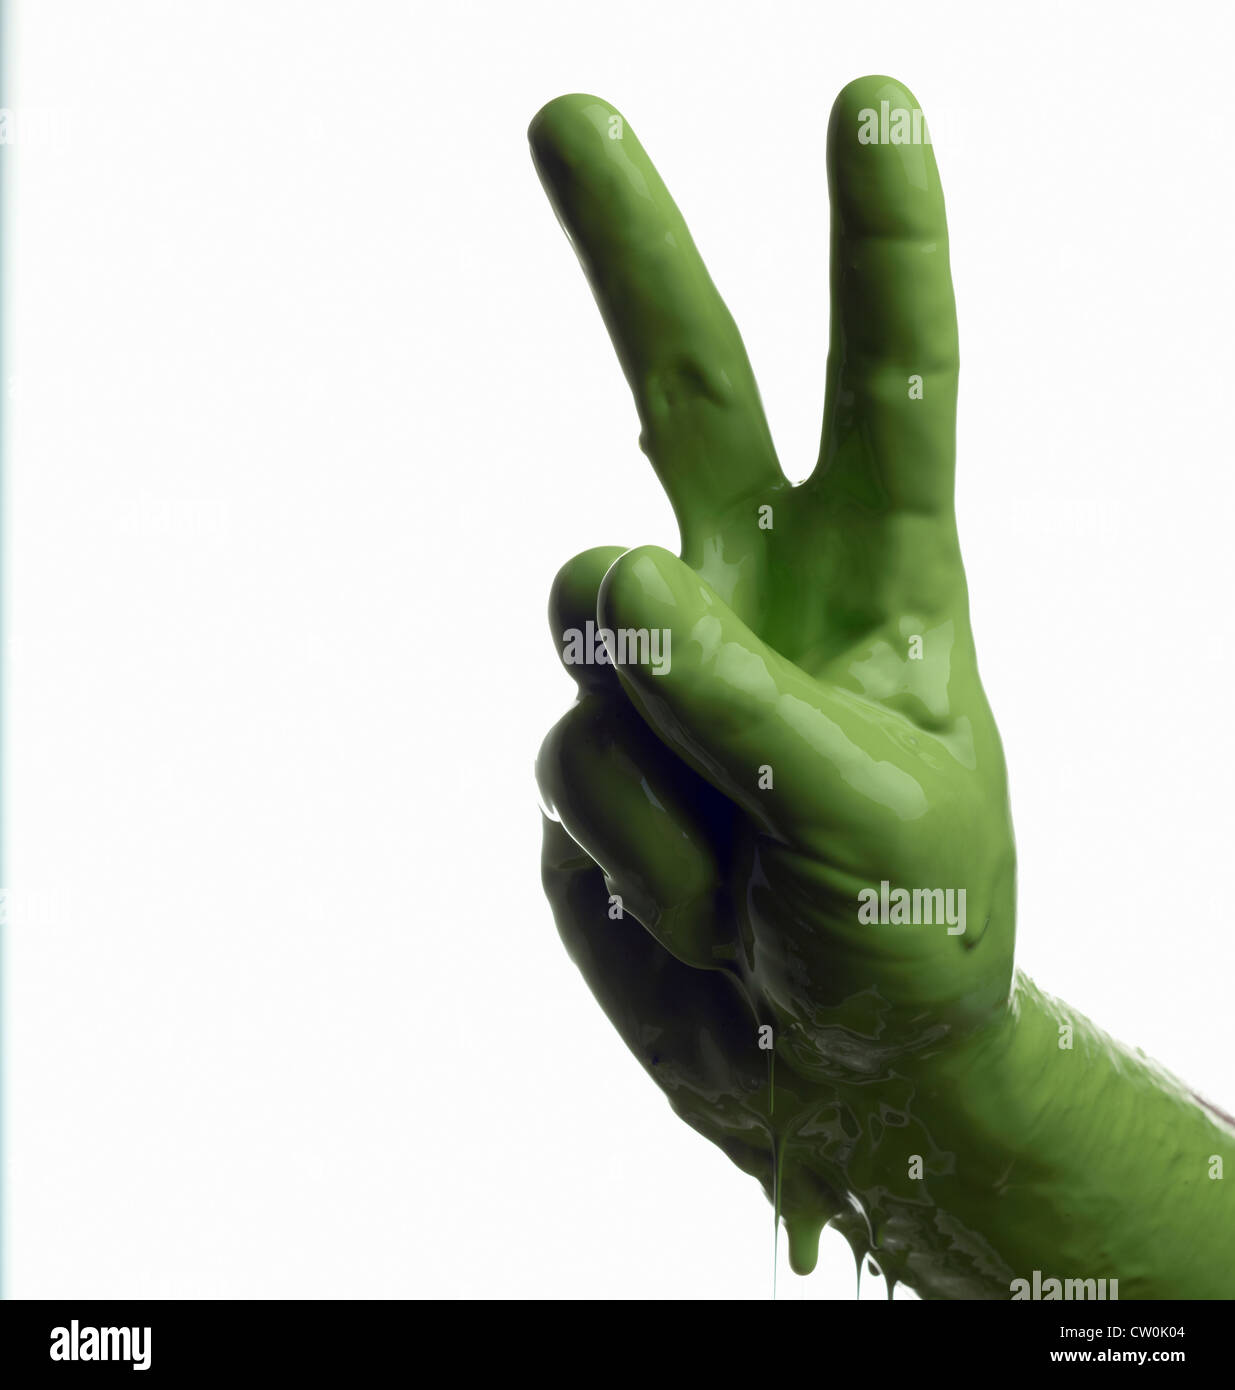 Green painted hand making peace sign - Stock Image